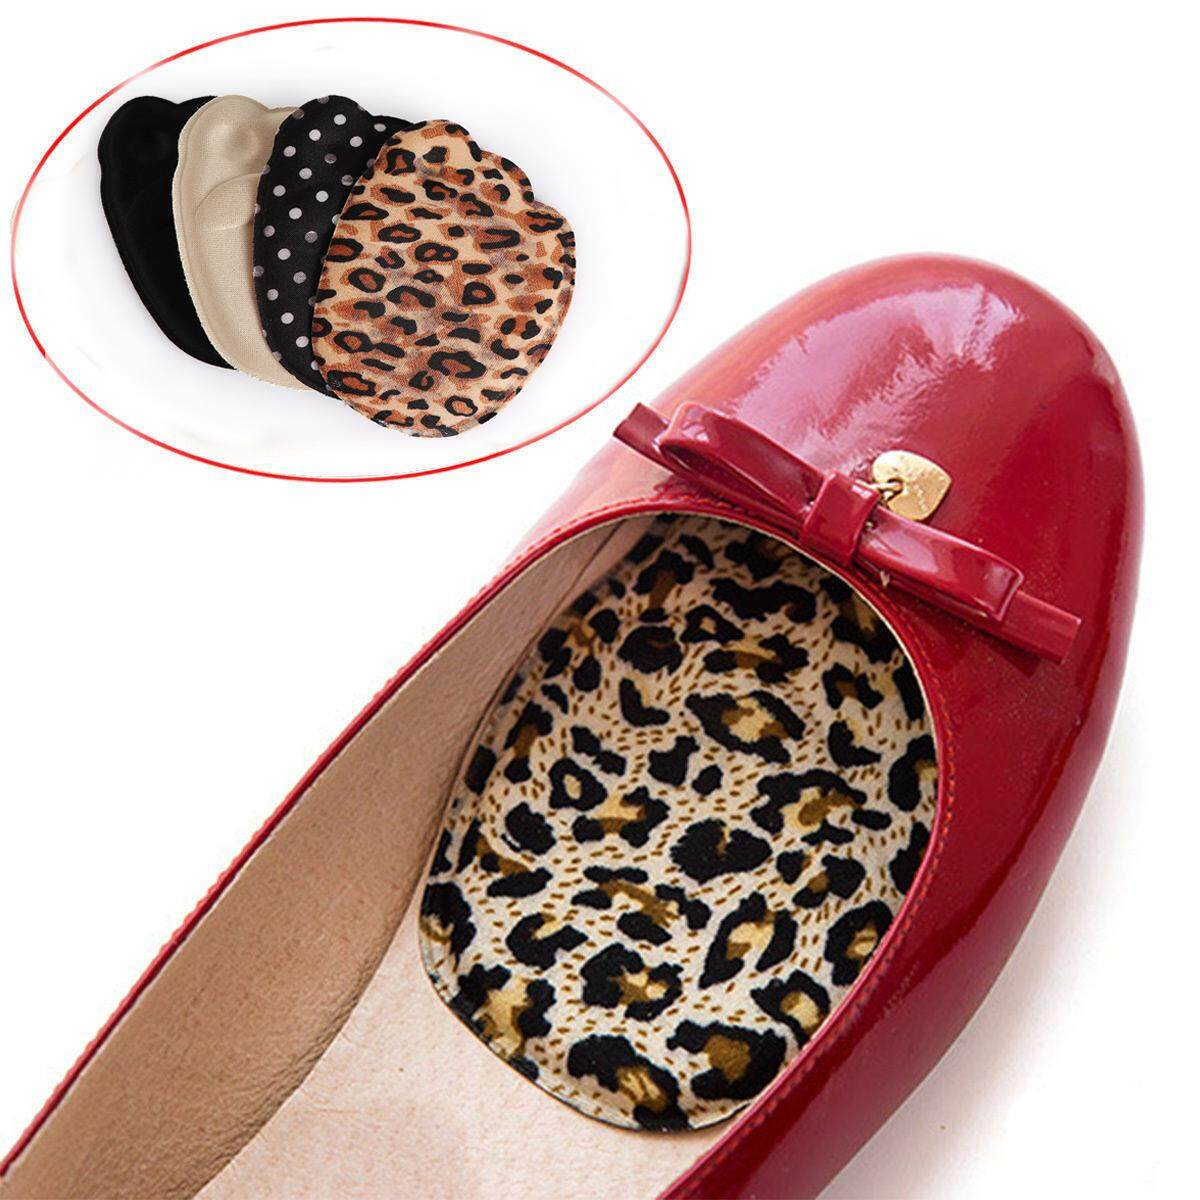 1Pair High Heel Foot Cushions Forefoot Anti-Slip Massage Silicone Insole